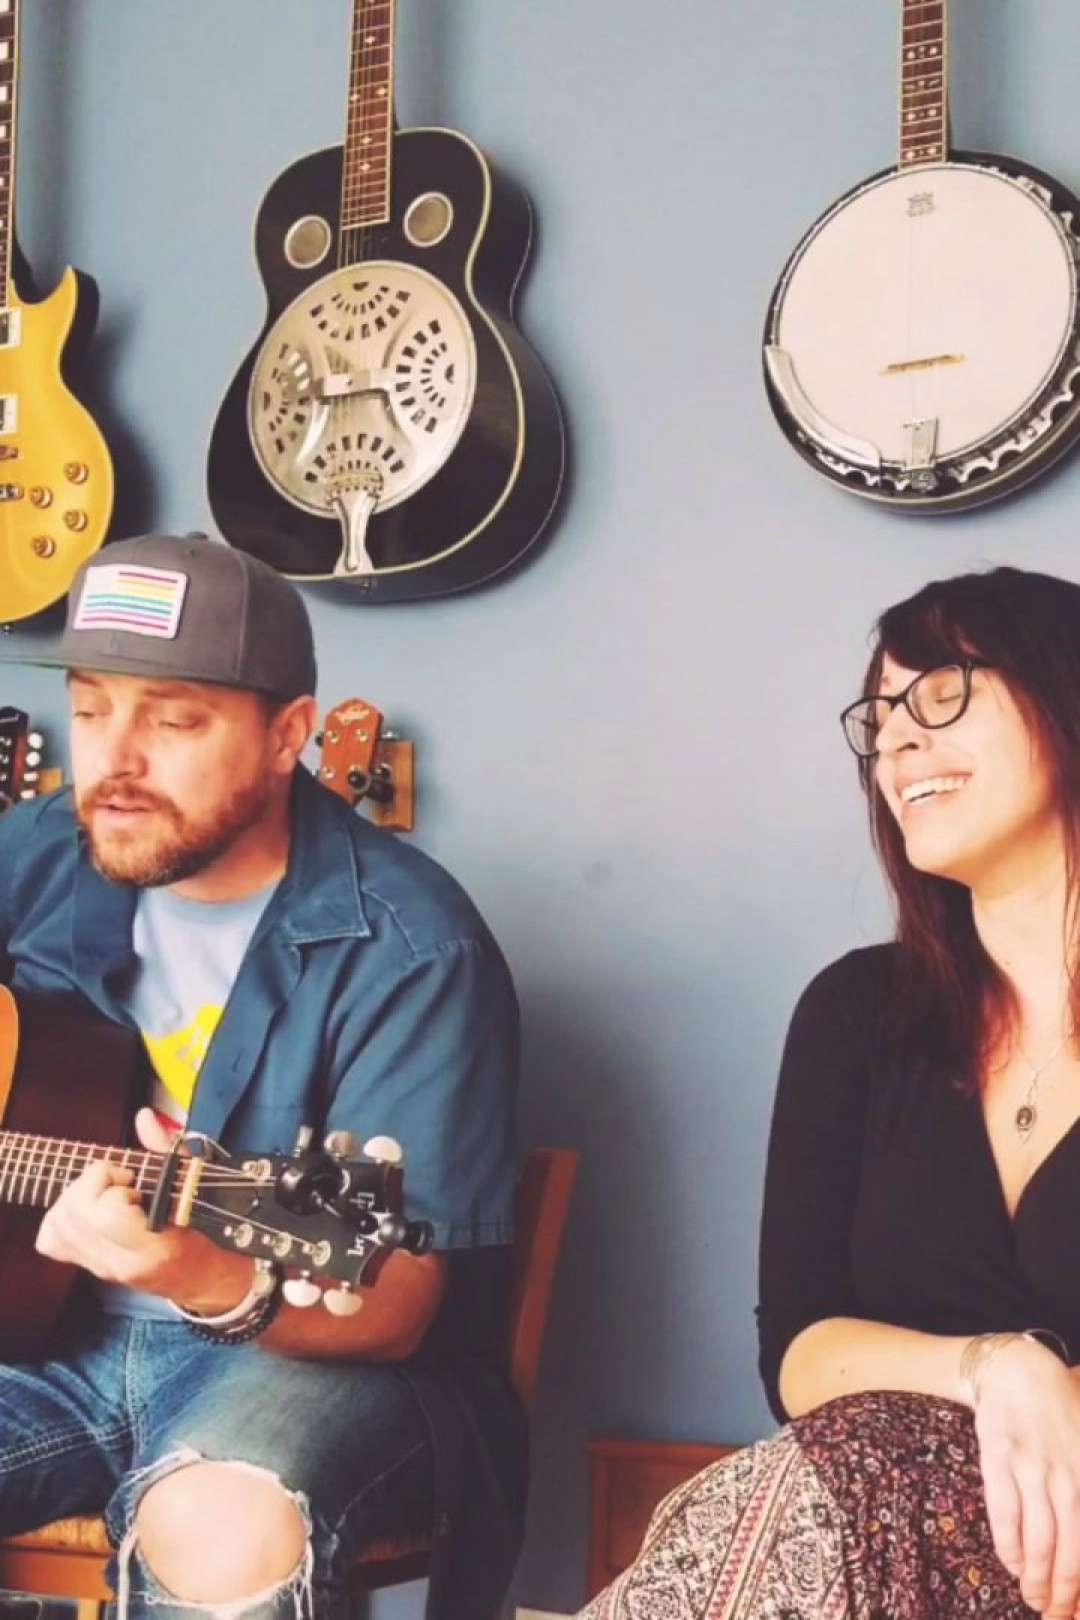 Mike & Jen are back this week with their interpretation of Hard S